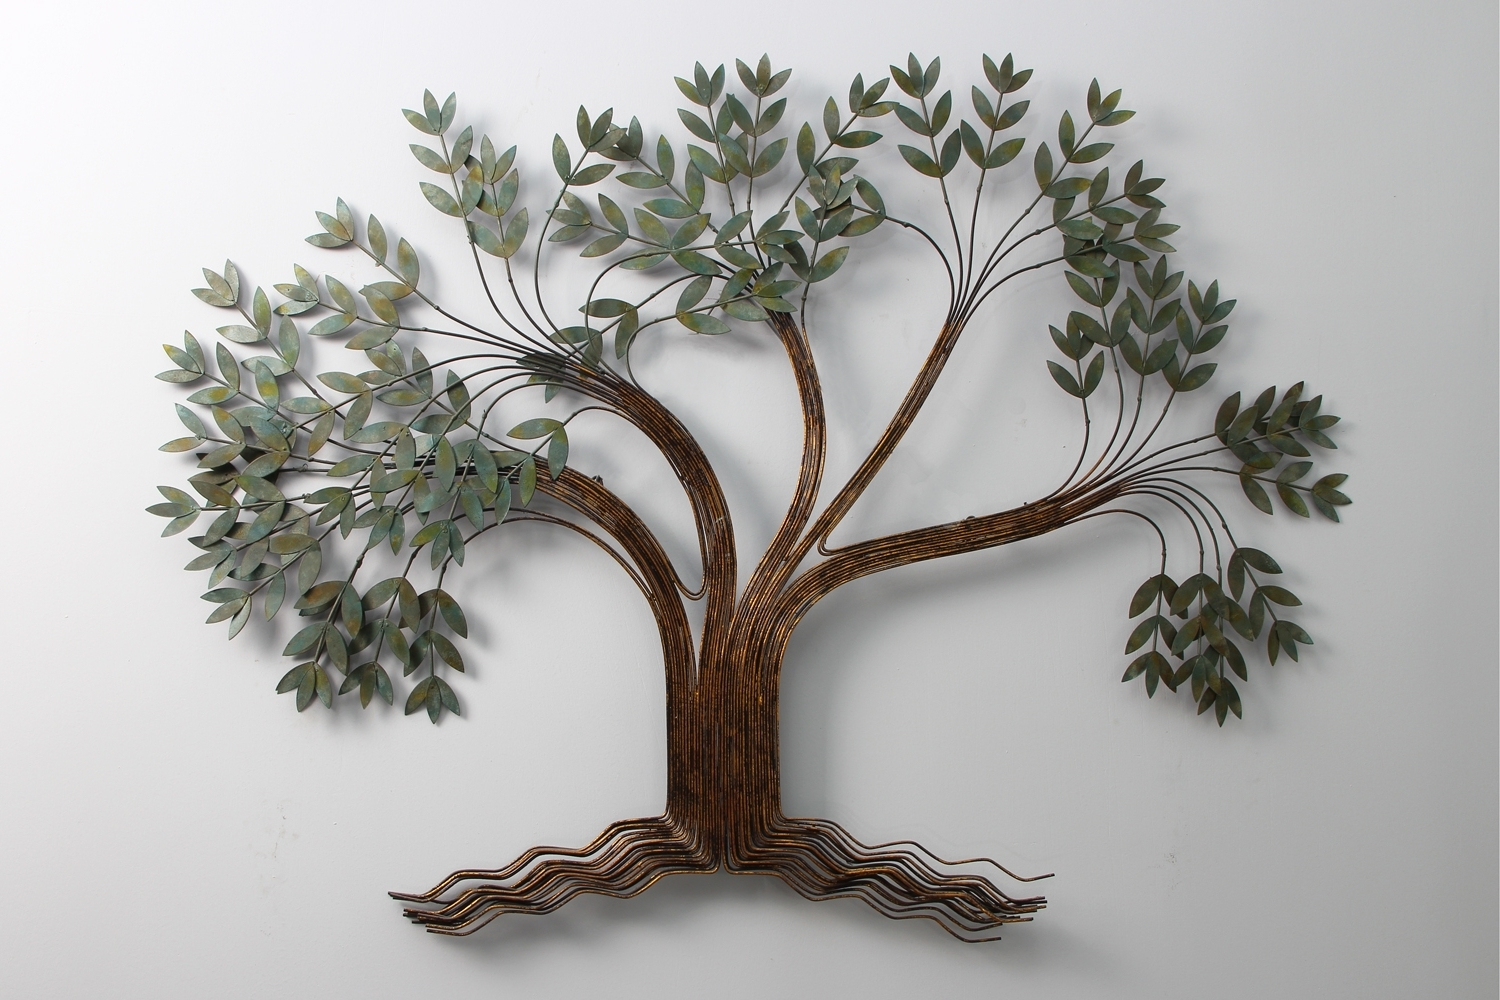 Tree Wall Art Sculpture In Most Current Metal Art Wall Decor Sculpture (View 11 of 15)